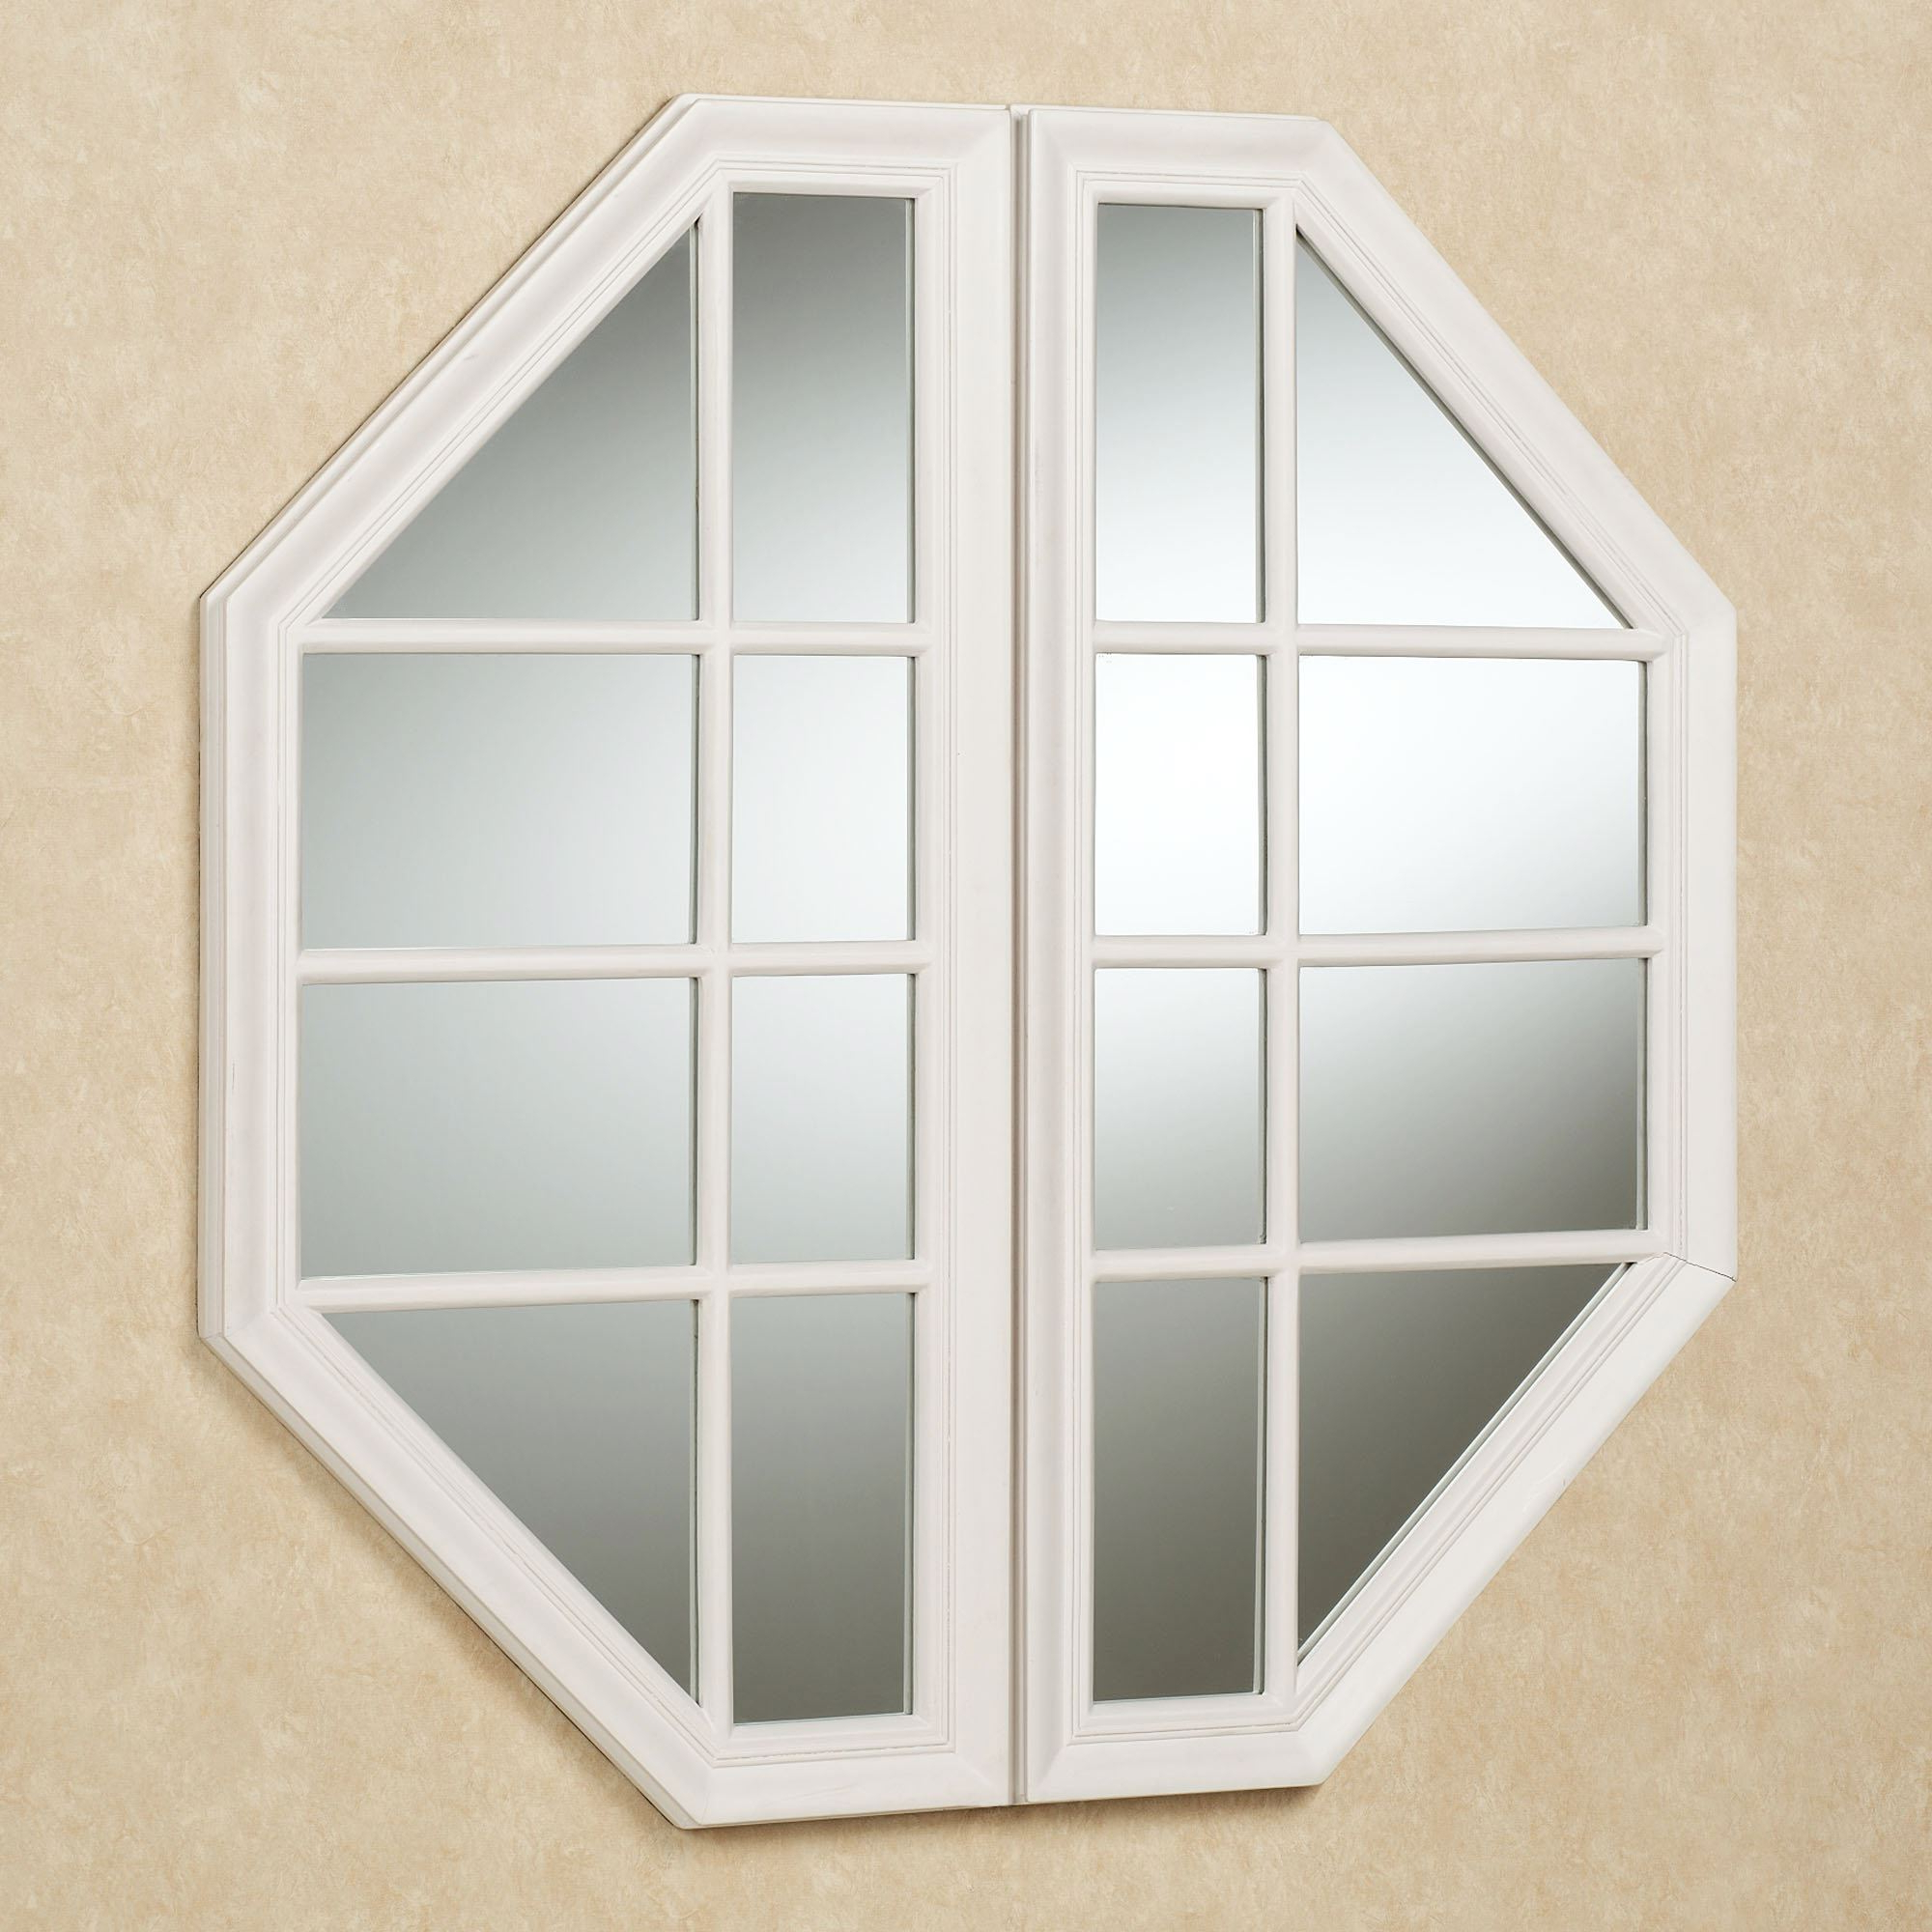 Cheverly Faux Window Octagonal Wall Mirror Intended For Most Up To Date Window Wall Mirrors (View 20 of 20)